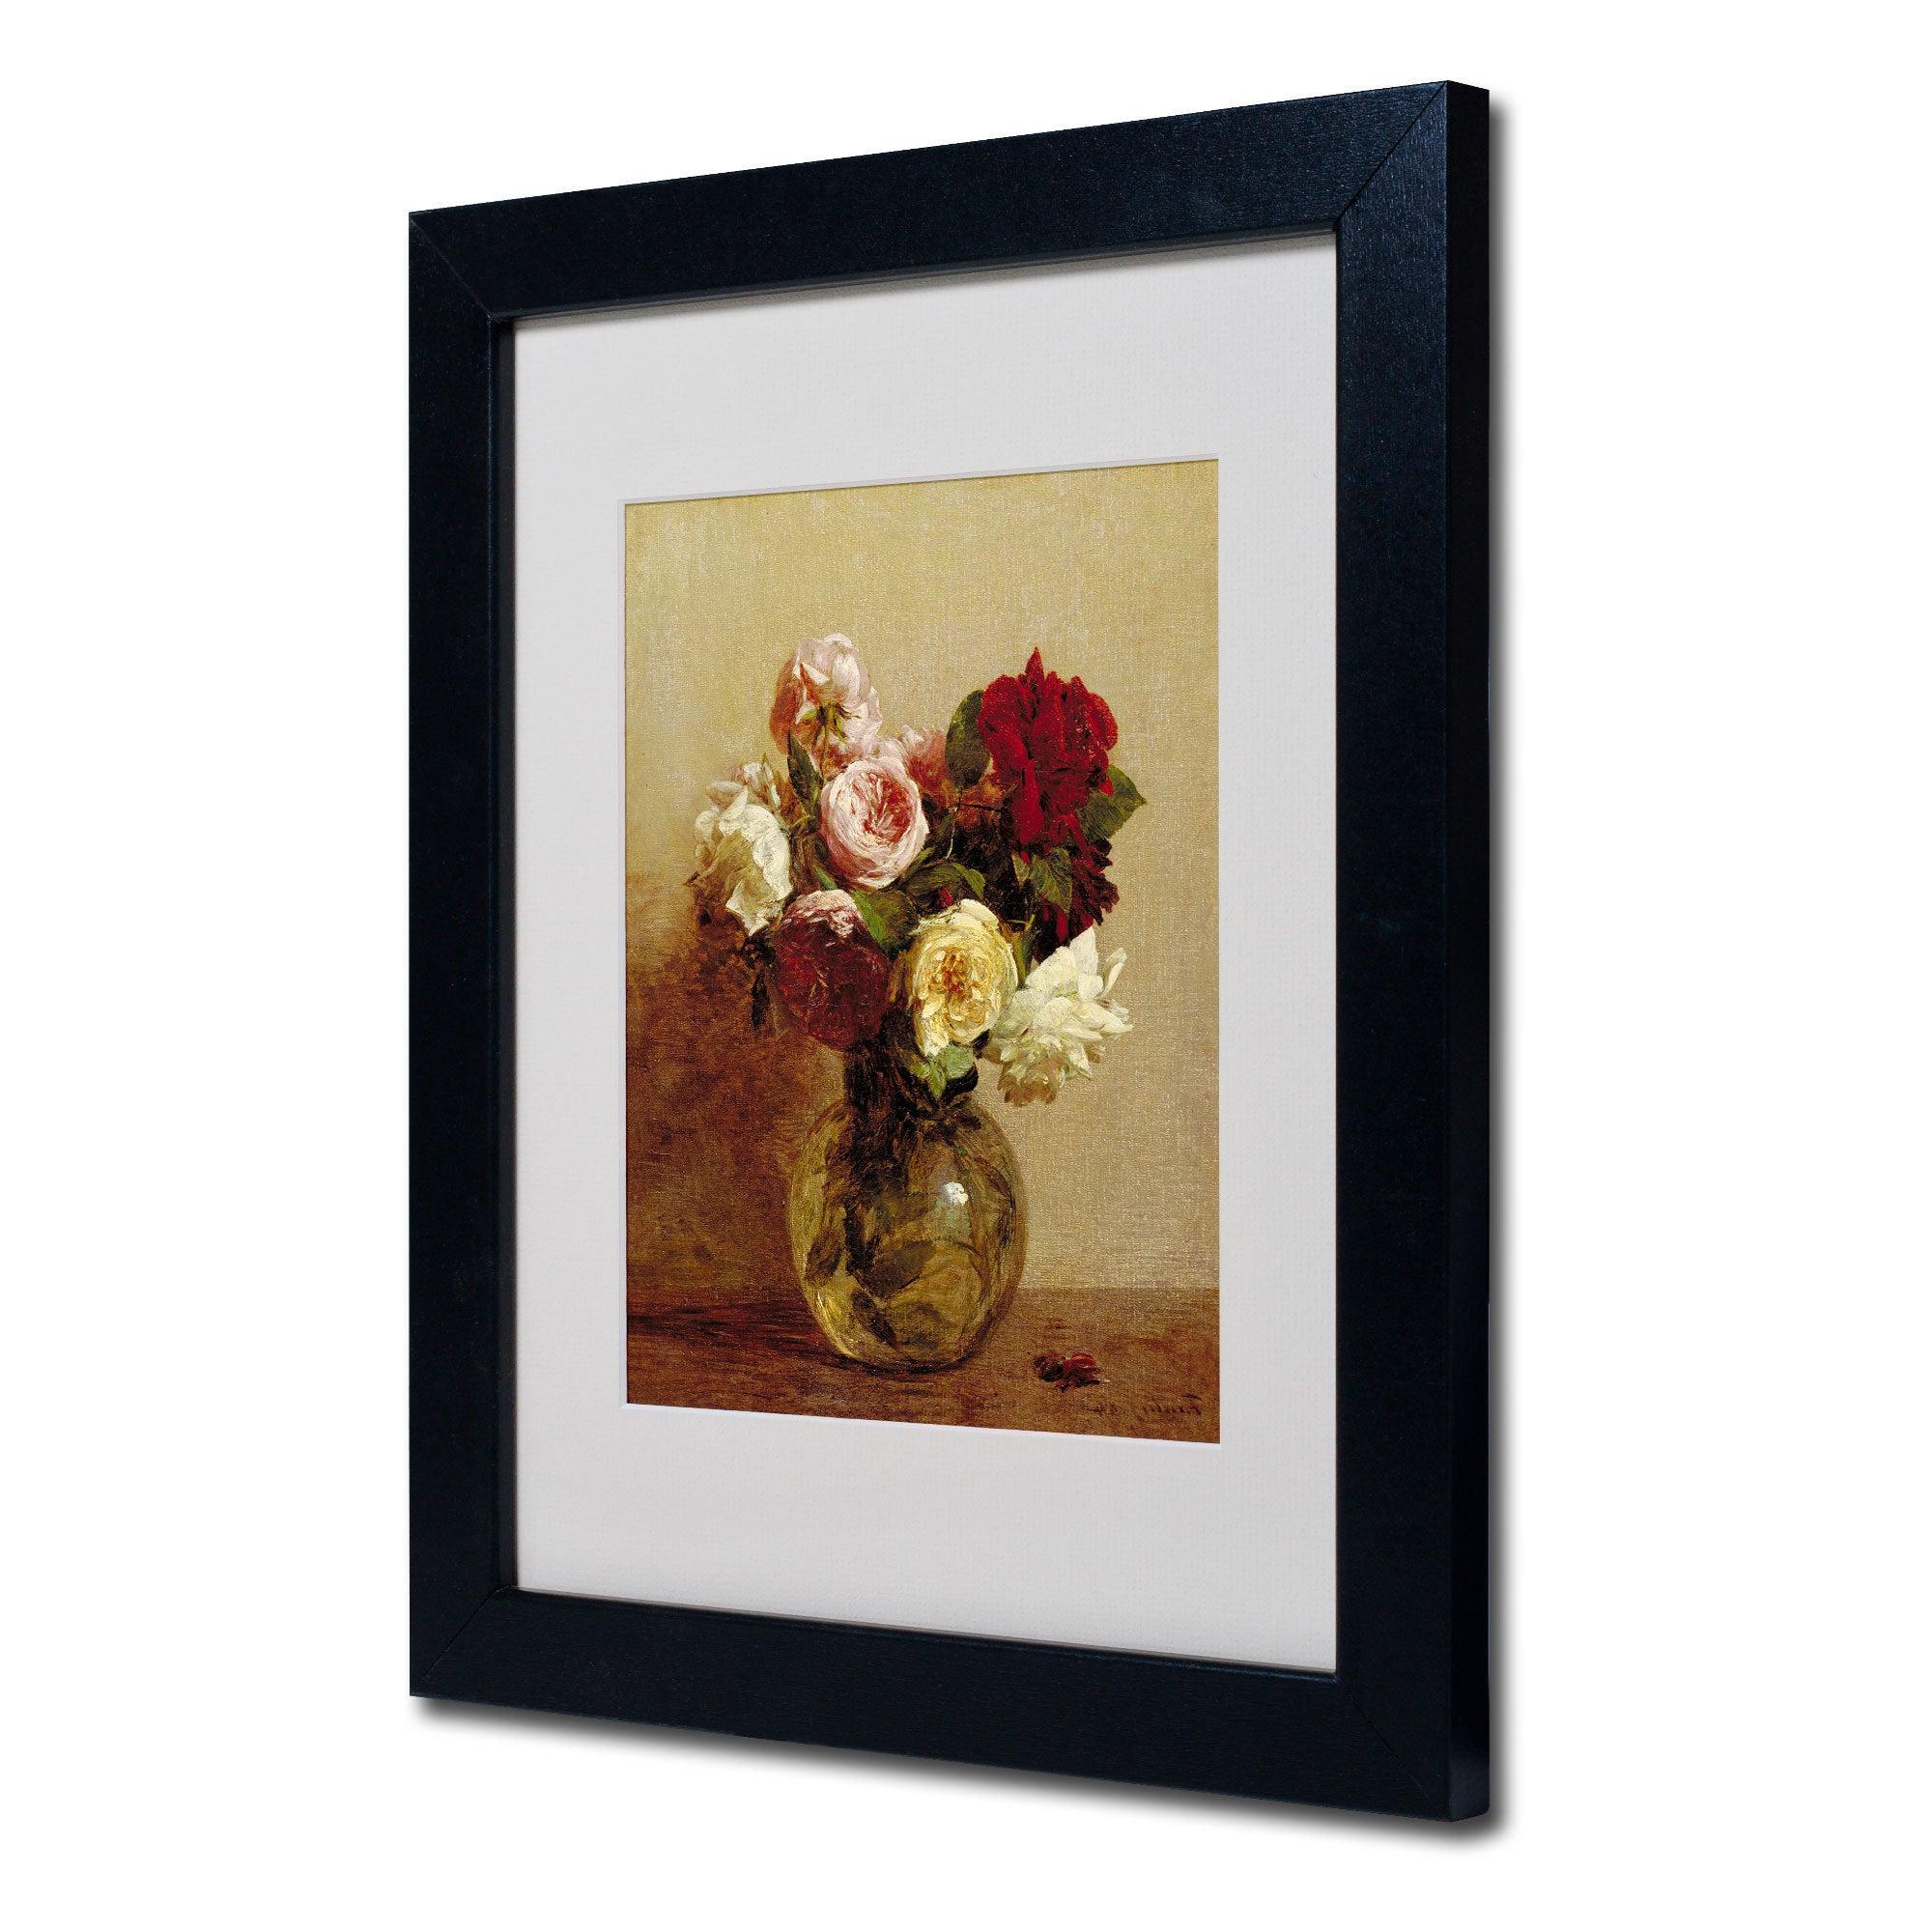 Shop Henri Fantin Latour 'roses 1884' White Matte, Black Framed Wall Throughout 2020 Latour Wall Decor (View 17 of 20)